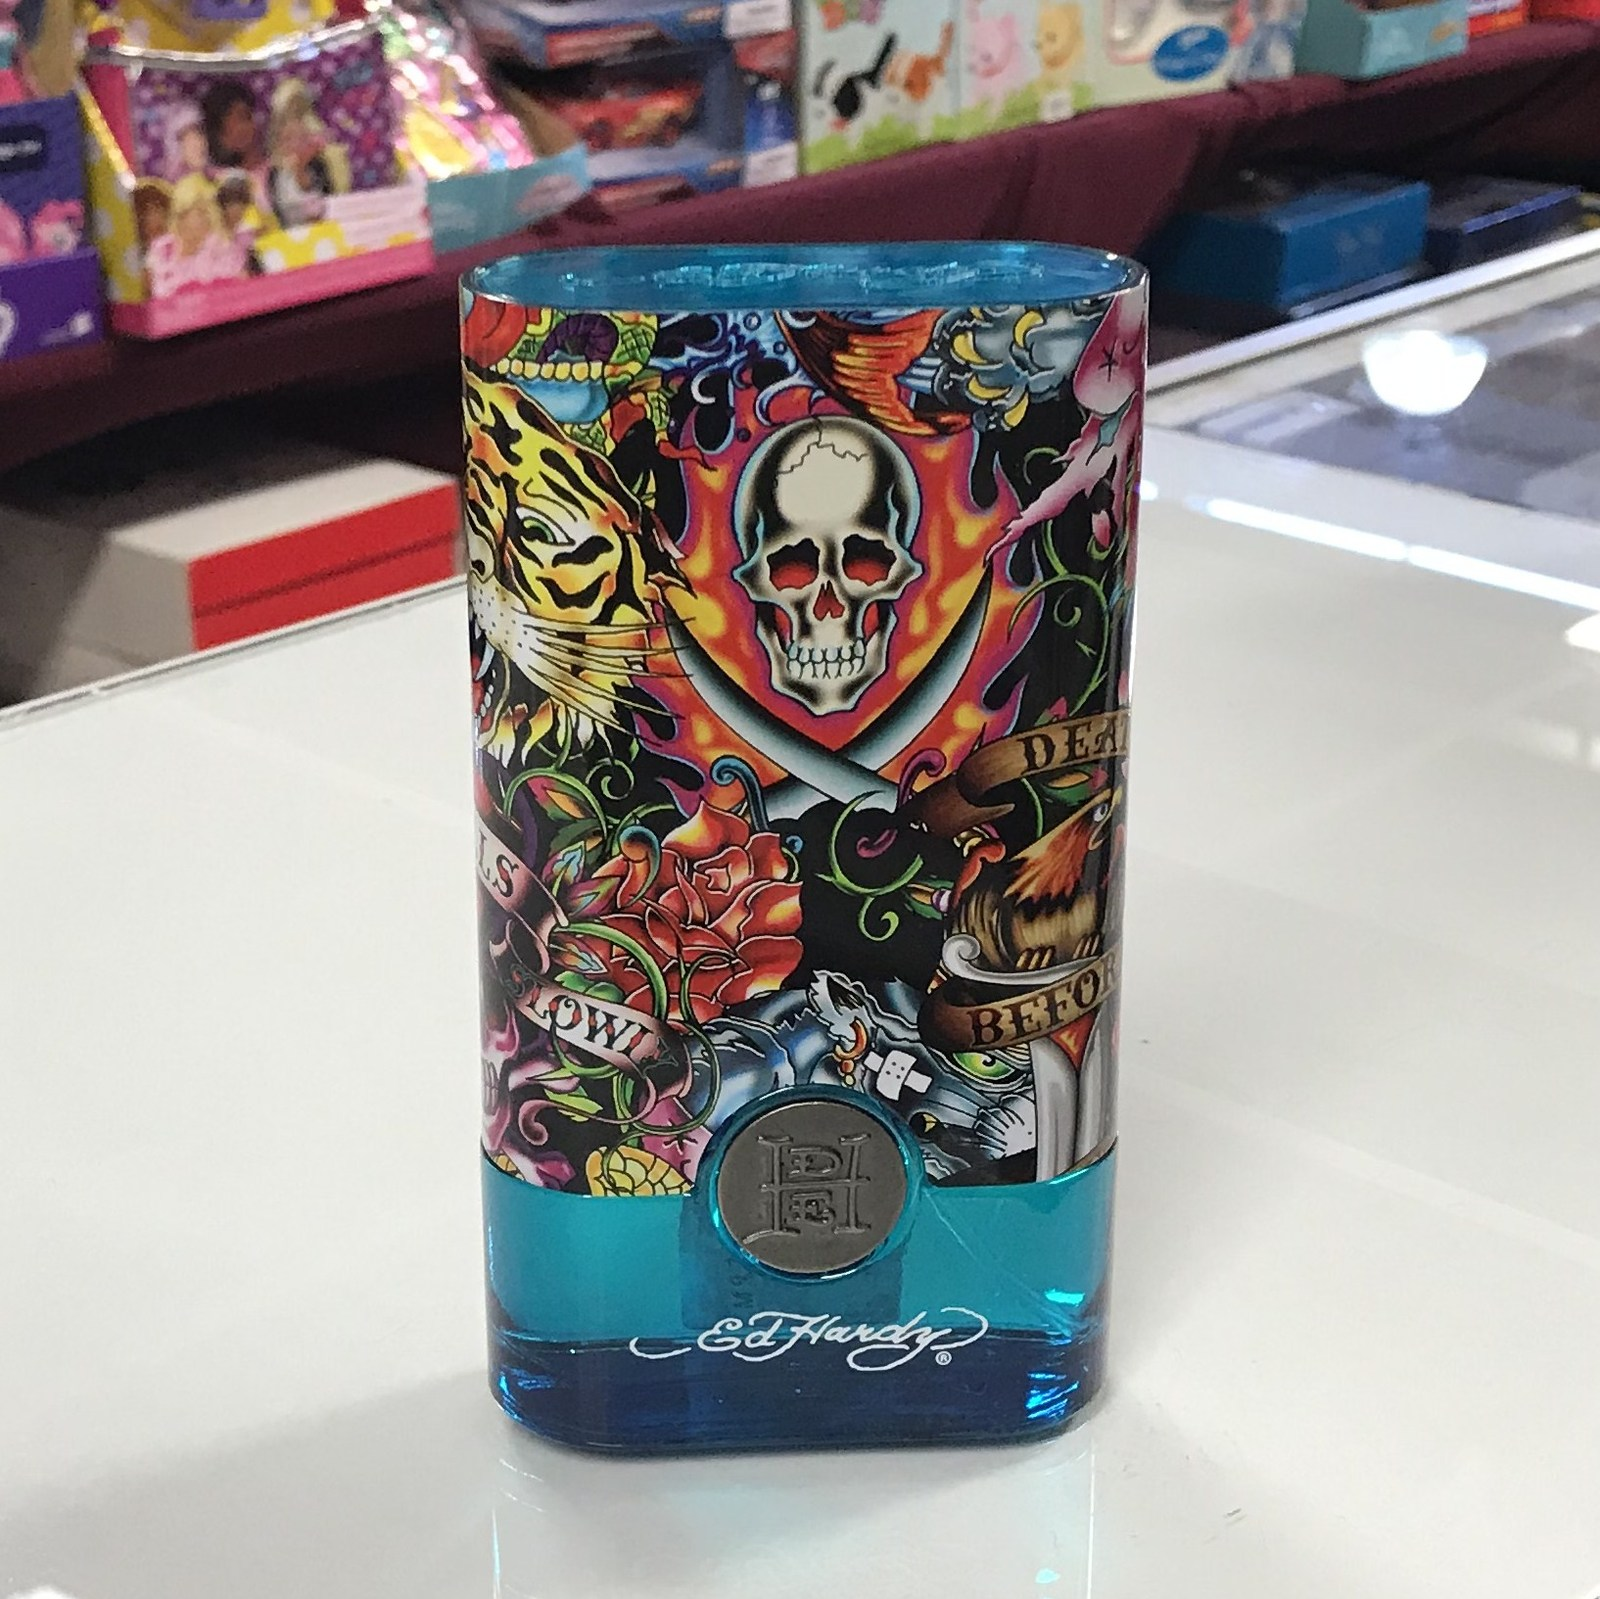 Primary image for Ed Hardy Hearts & Daggers by Christian Audigier 3.4 oz EDT spray, unbox